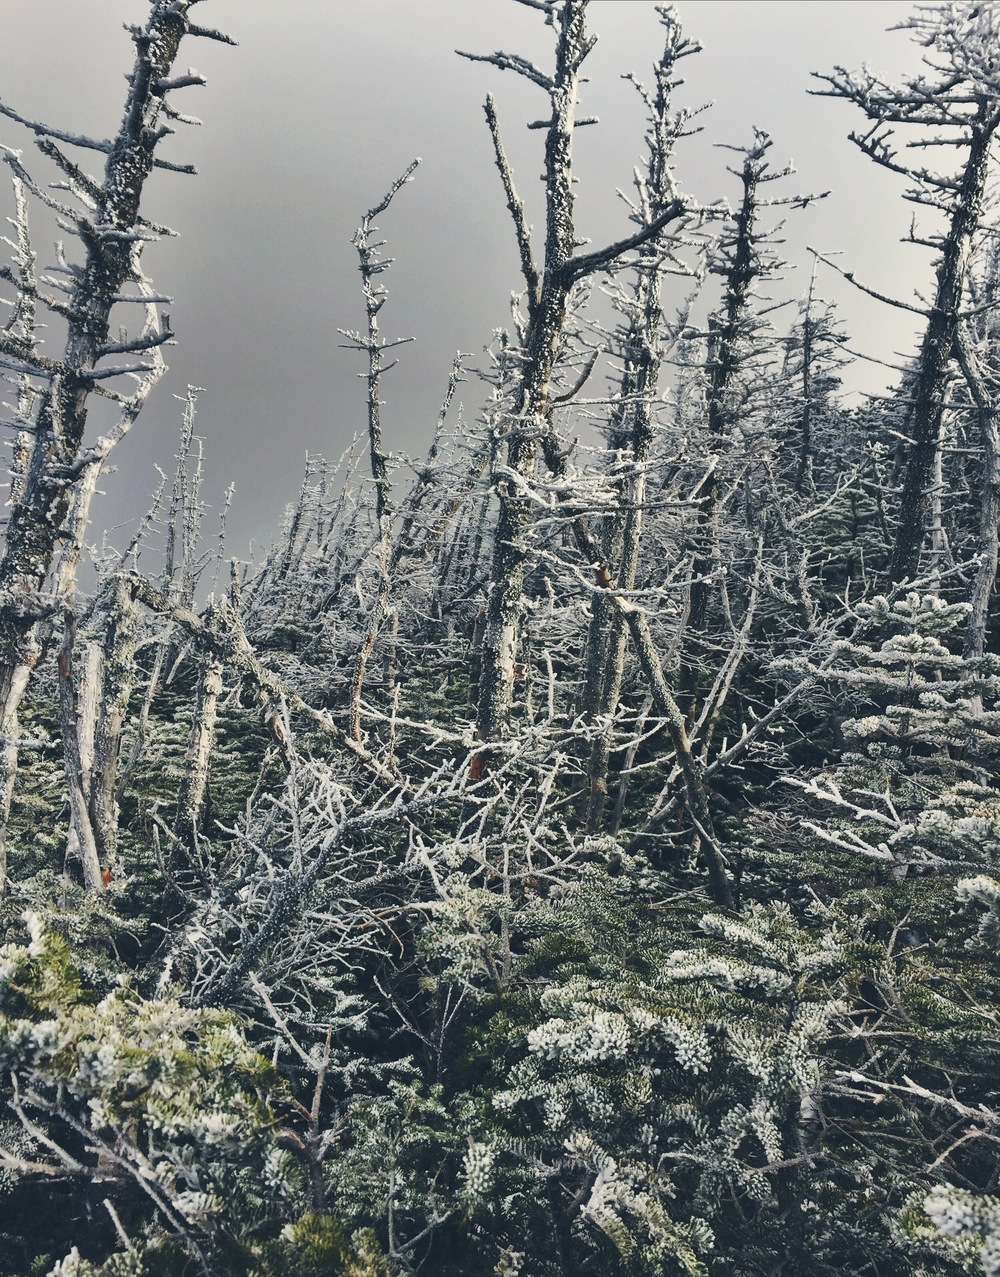 A frost-bitten forest on the way up Mt. Bond.